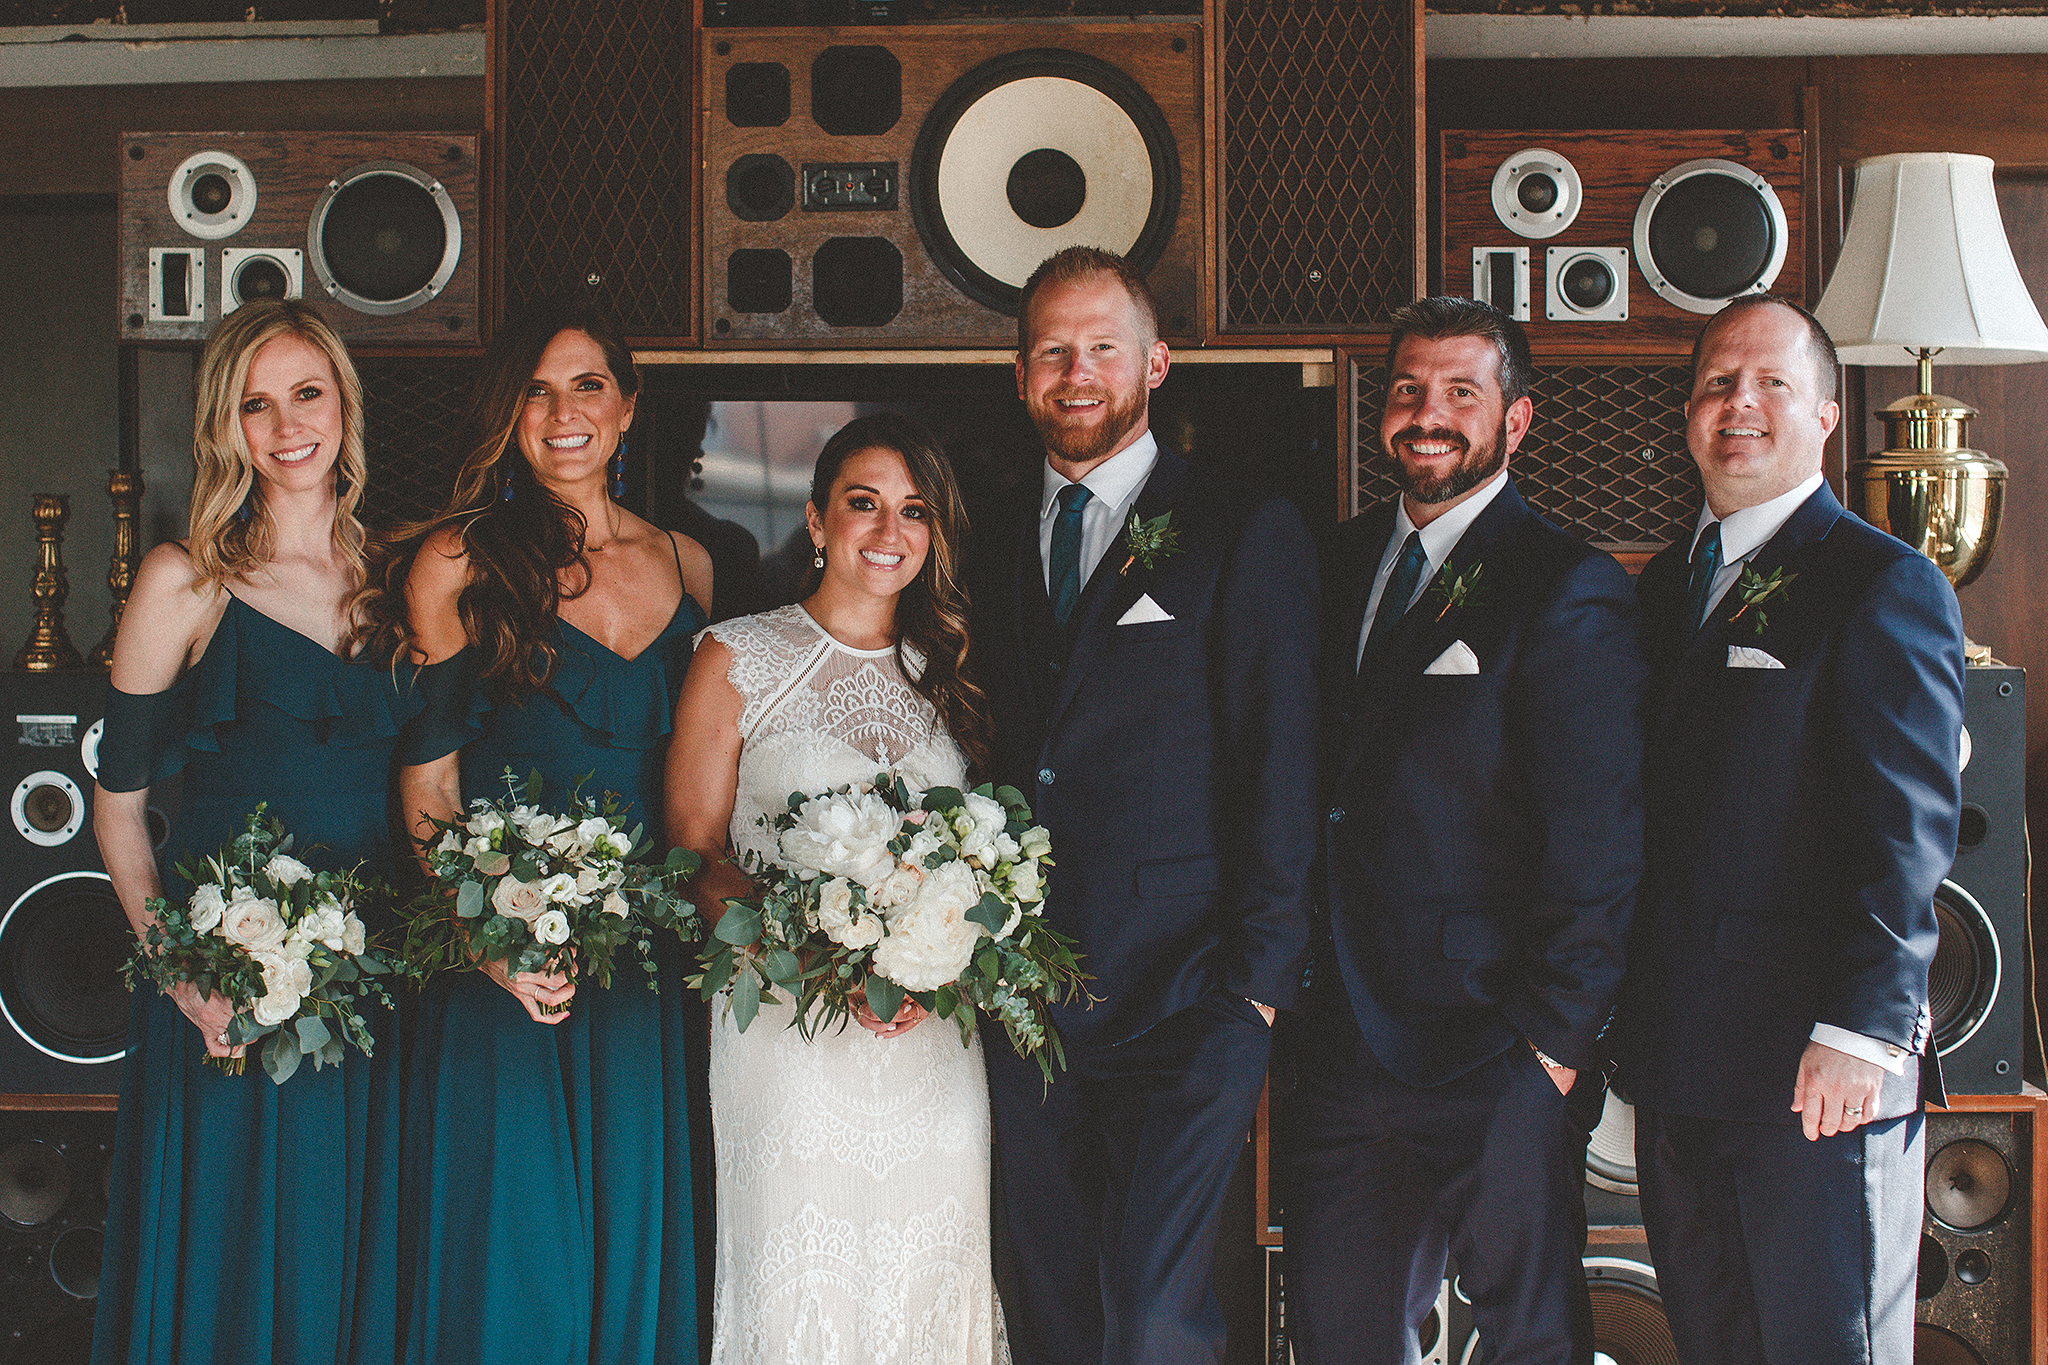 wedding party in front of vintage speaker wall | the ivy house milwaukee wedding photographer | chrissy deming